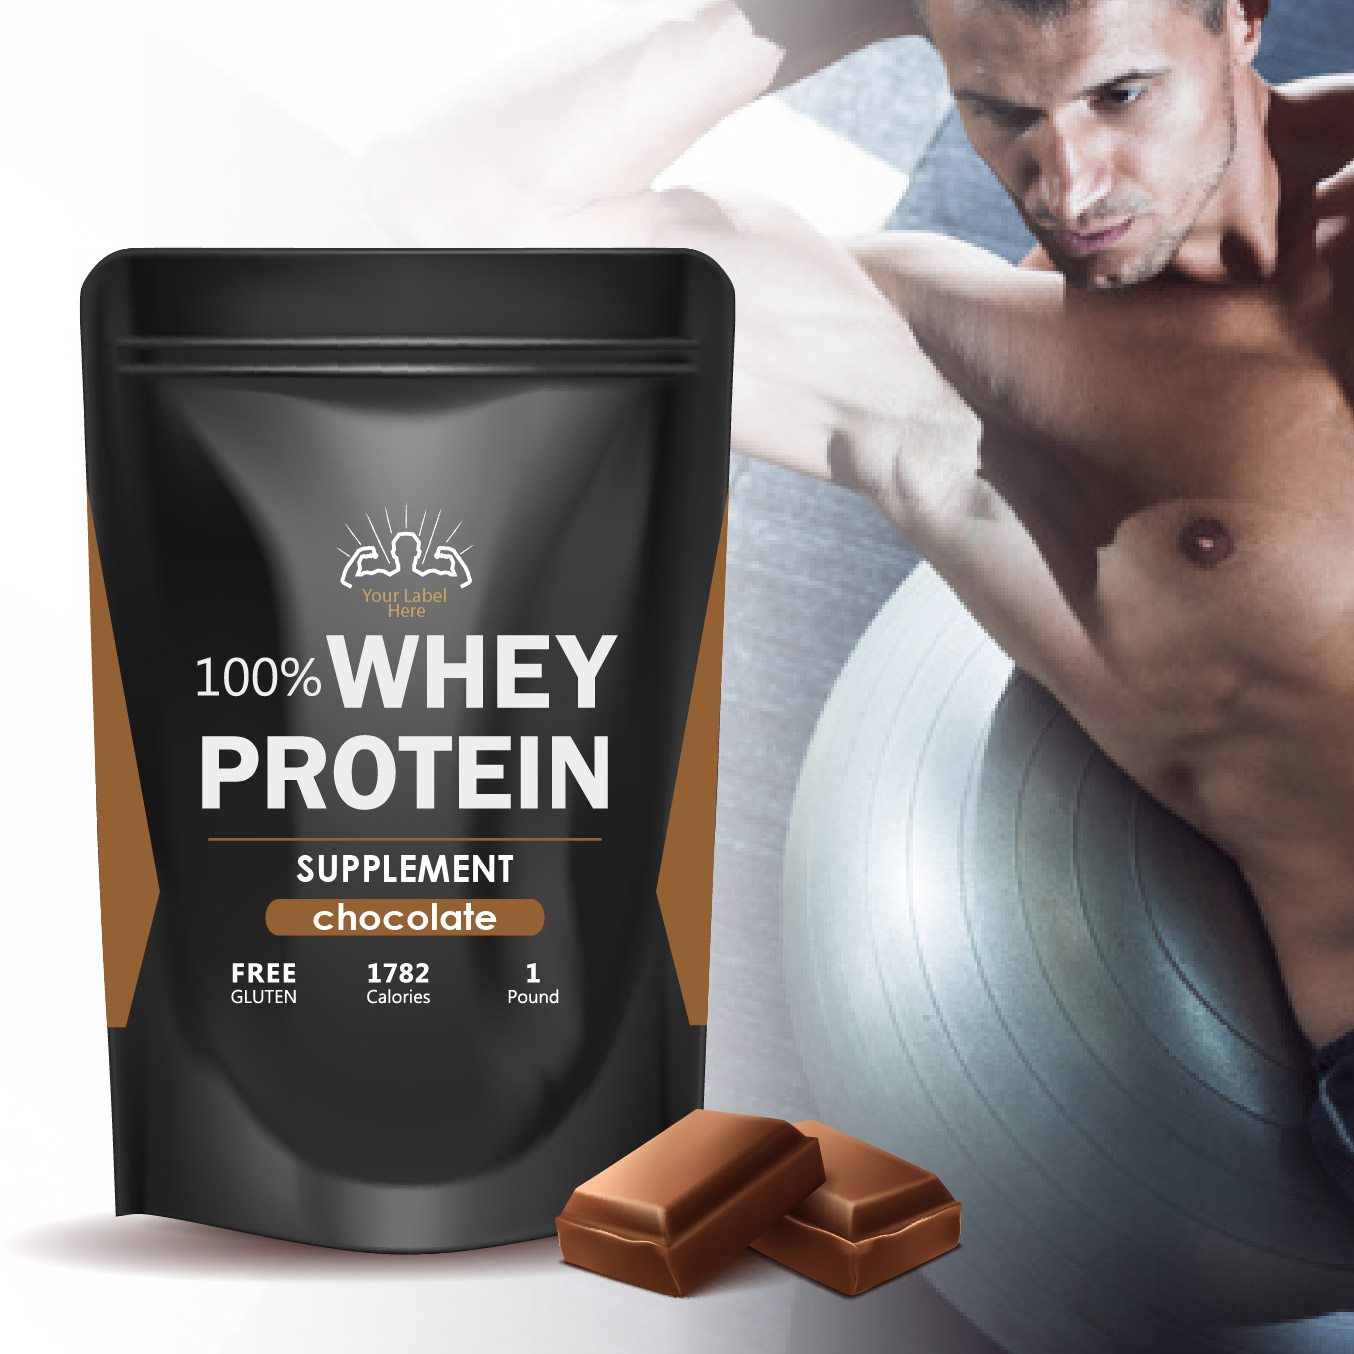 The Ultimate Nutritional Protein Gold Standard 100% Whey Protein Strawberry Flavor Can Be